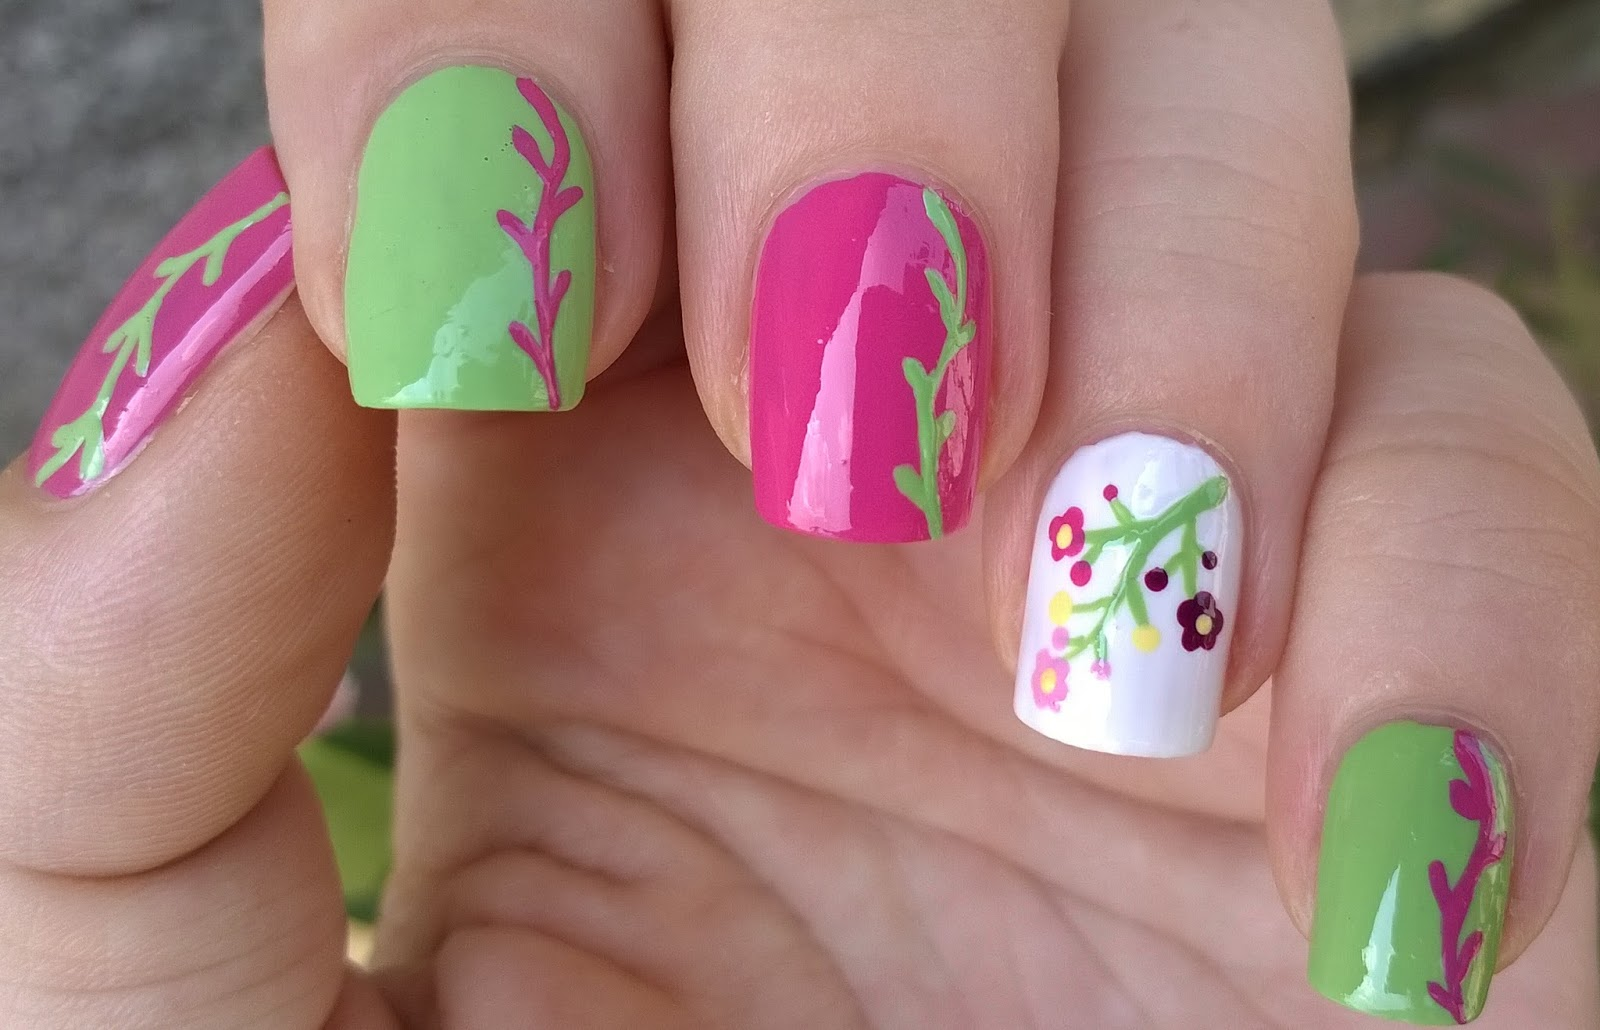 Nail Art Brush Designs Fl Nails In Pink Green White